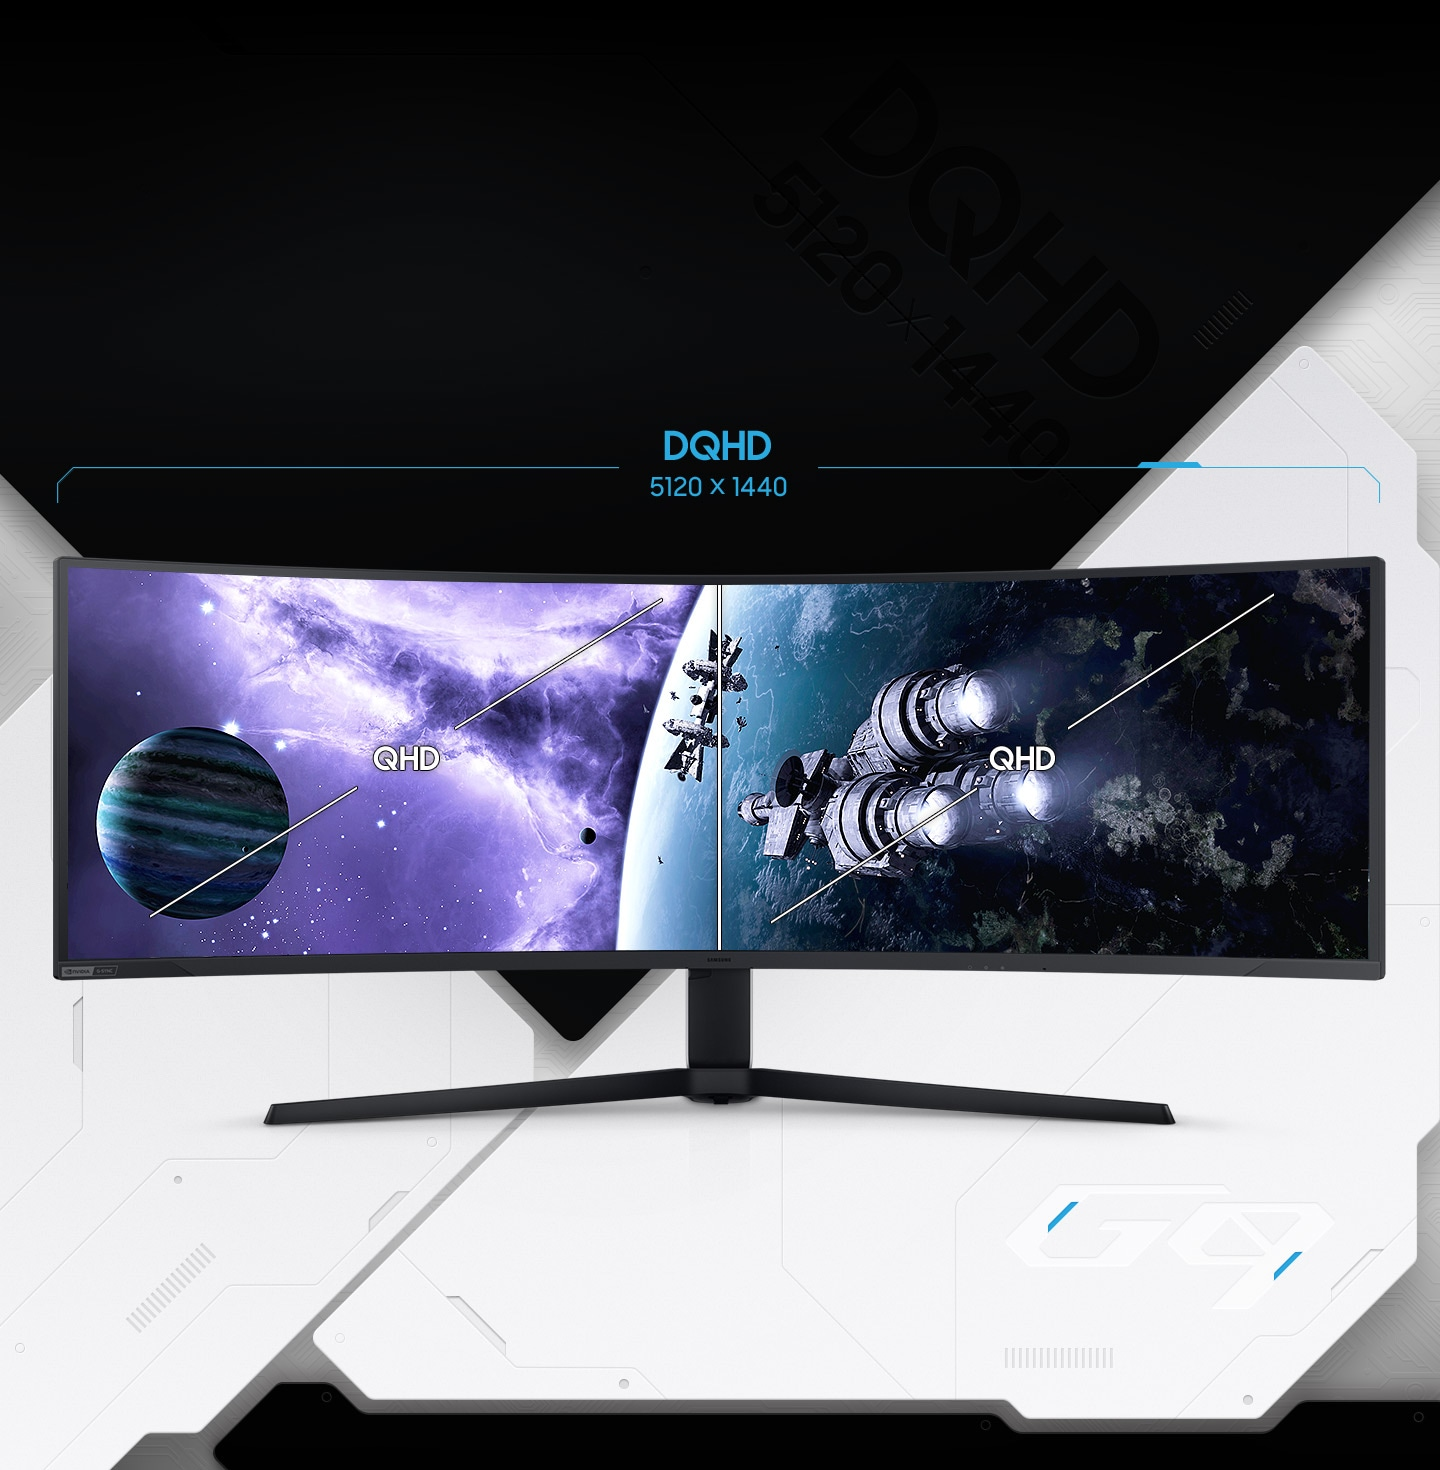 A G95NA monitor is shown with a starship blasting through space towards a light source. The screen is split into two equal sections with †QHD' shown in the middle of each section. Above the monitor a line stretches the length of both sides with the word †DQHD' along with the pixel count of 5120 x 1440.